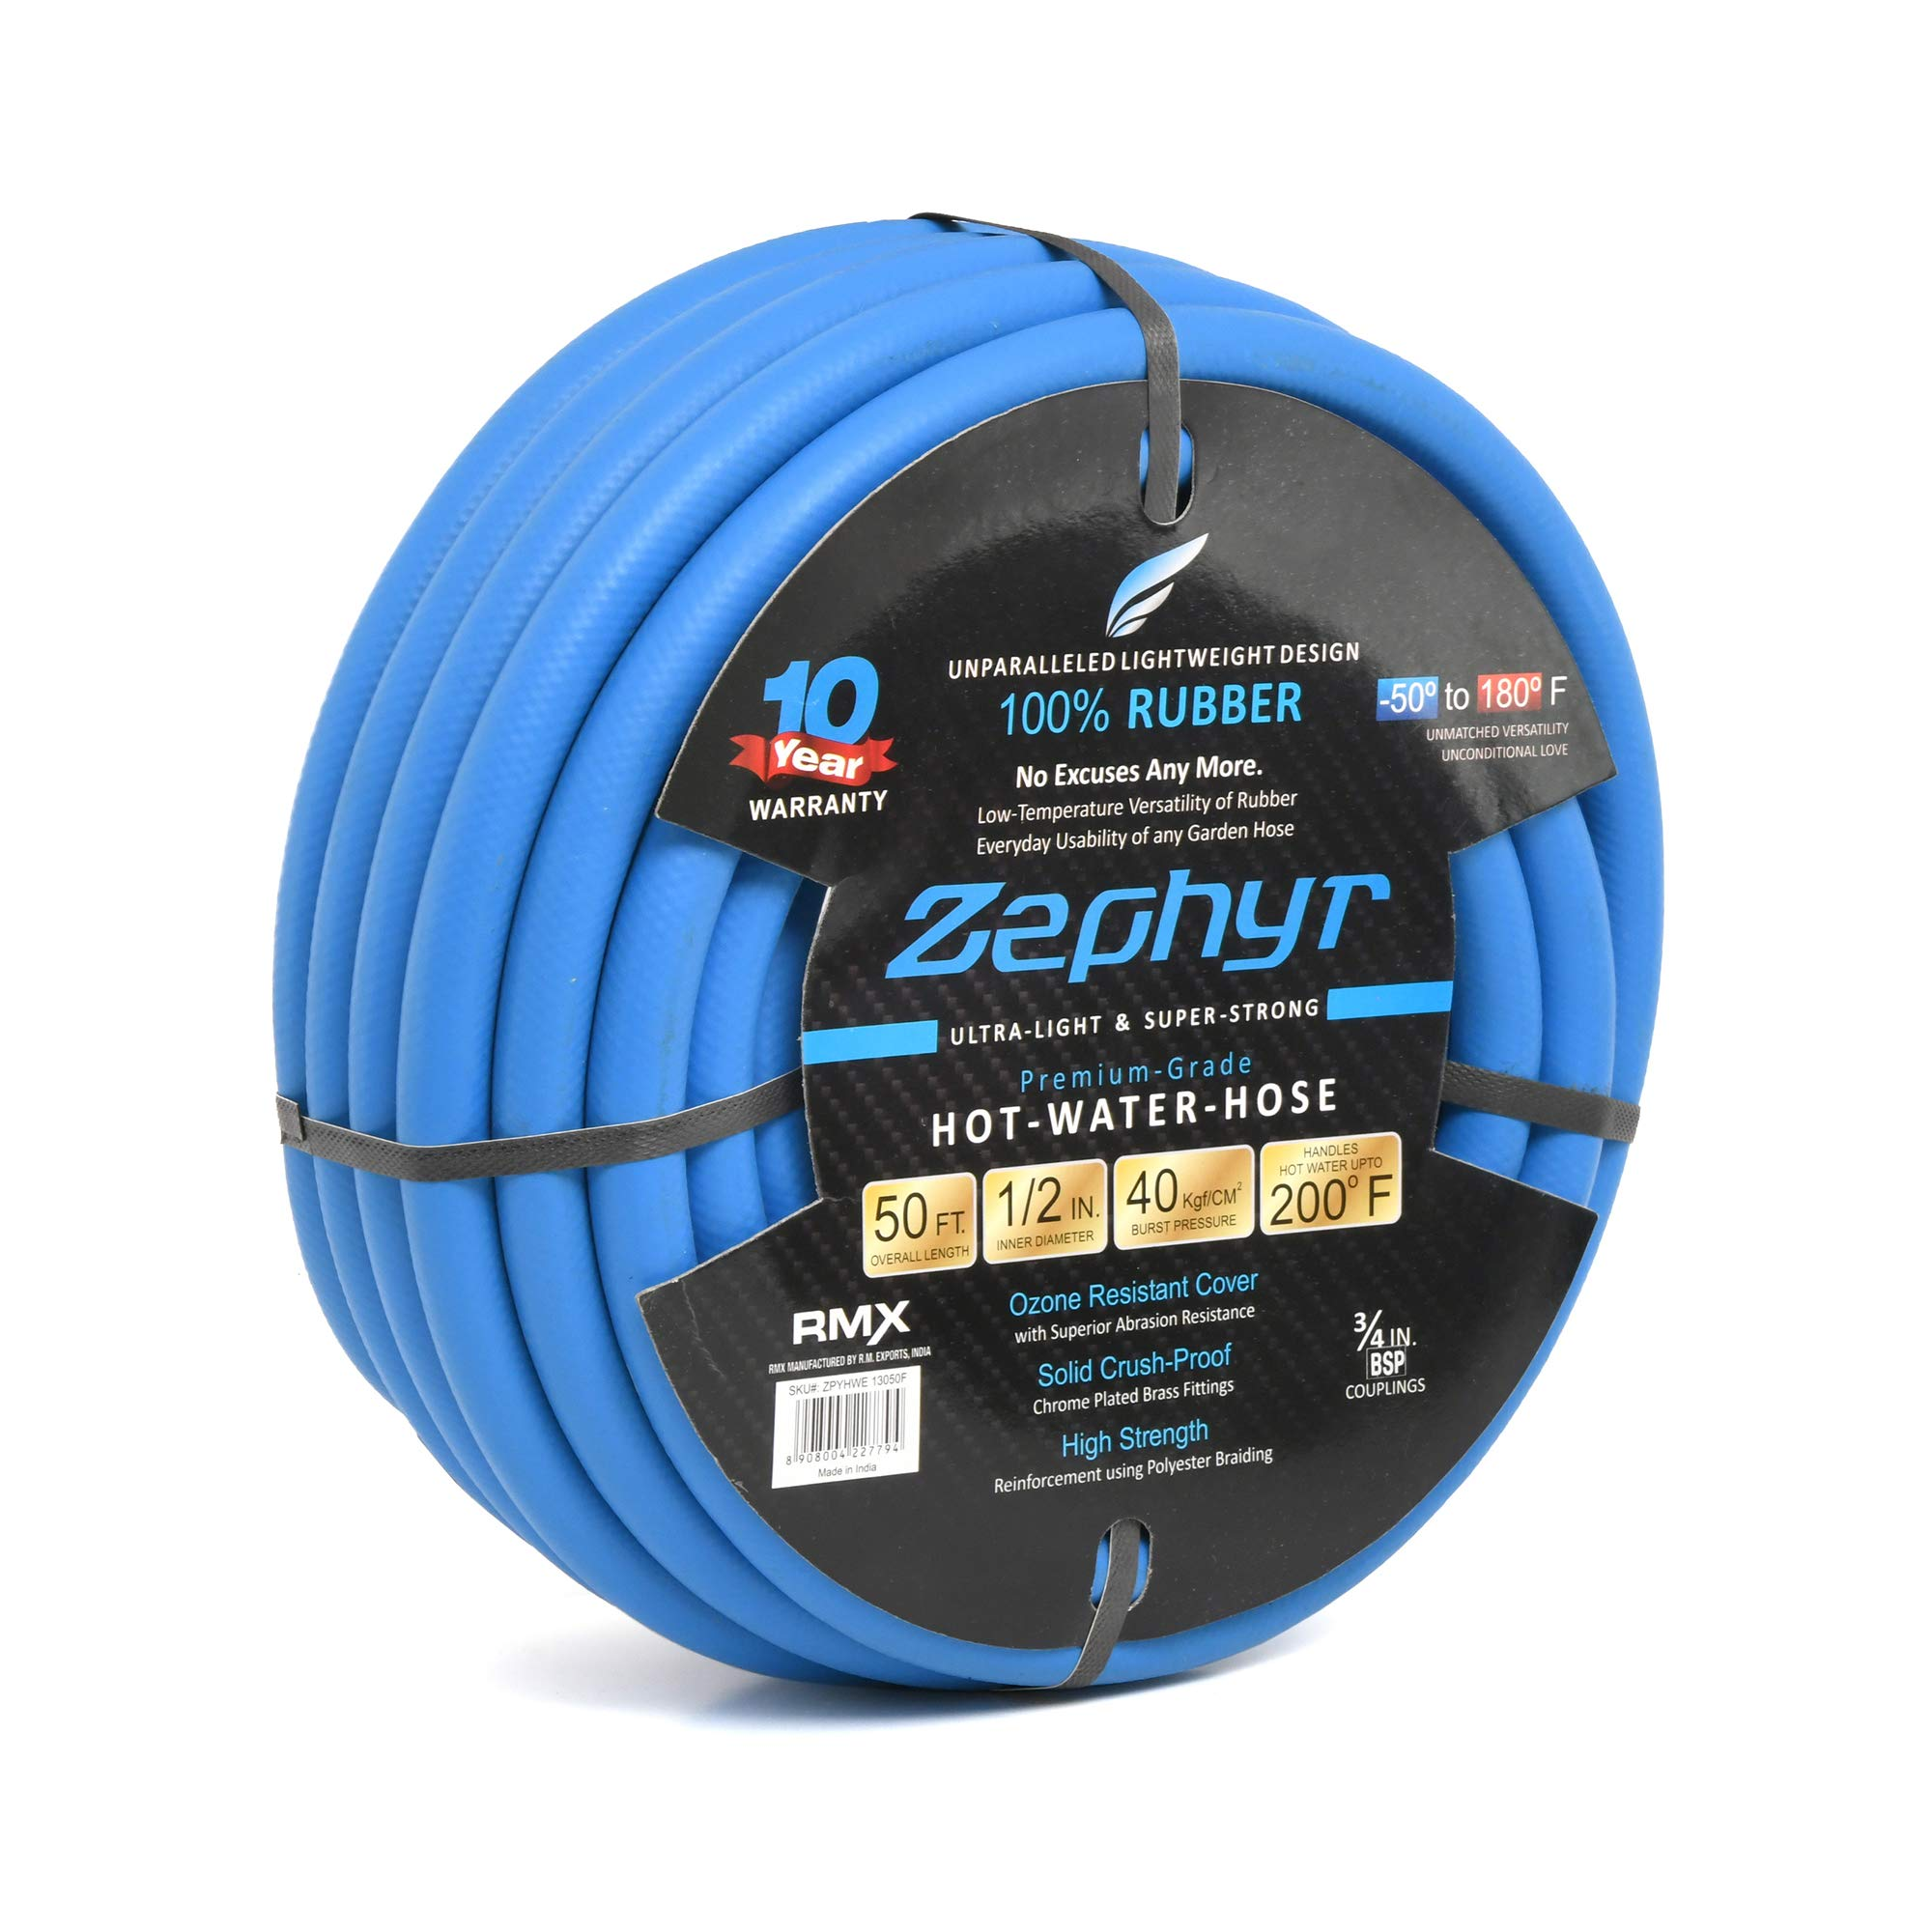 "Zephyr Next-gen Garden Hose (1/2"" x 50ft, Ultra-Light Flexible Rubber, Brass Fittings), Blue product image"